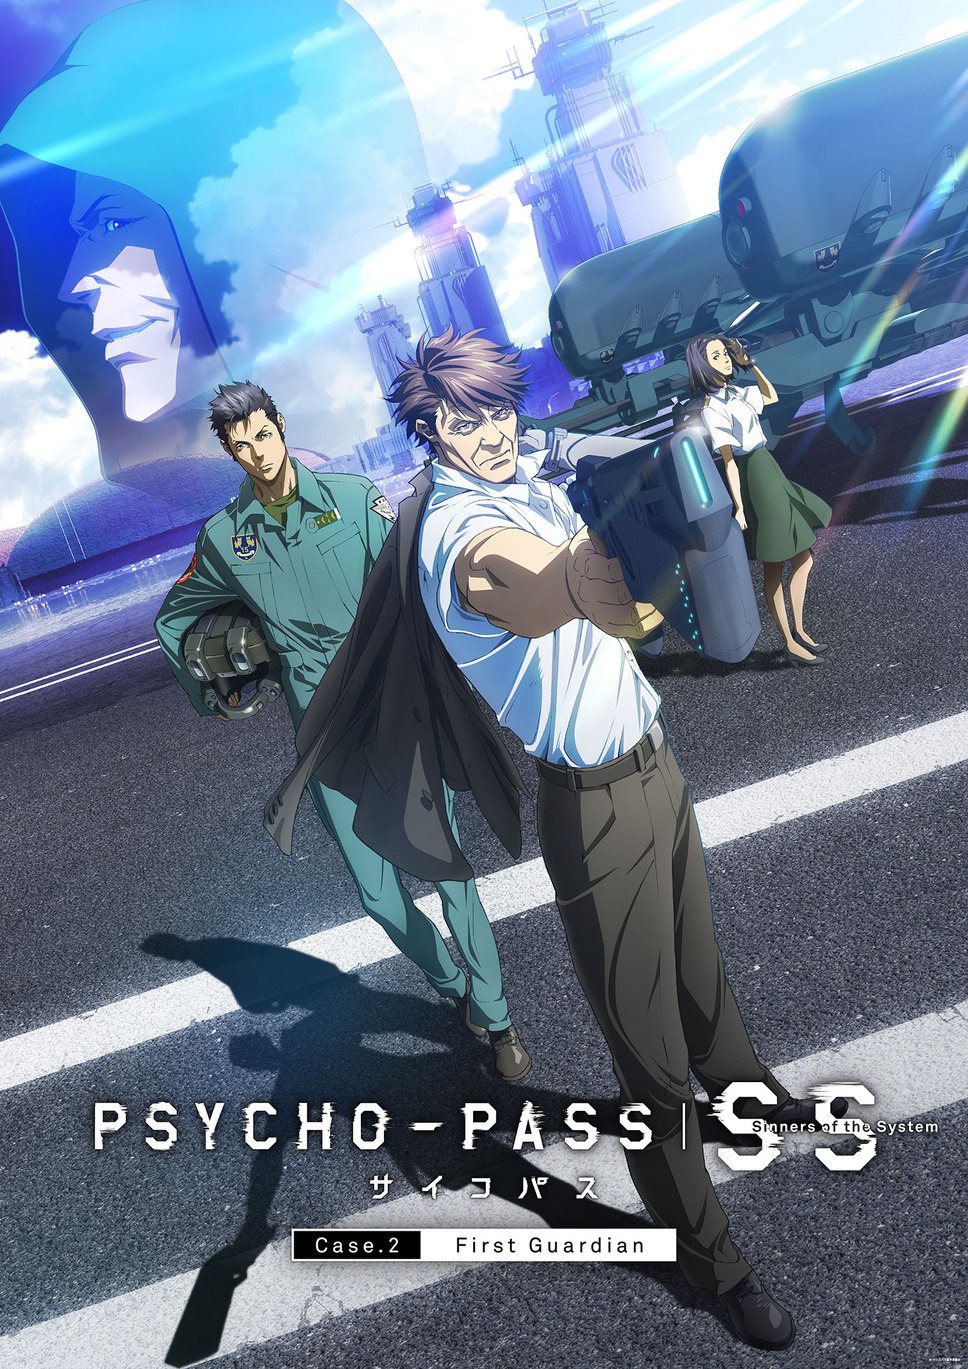 PSYCHO-PASS サイコパスSinners of the System Case.2 First Guardian 1枚目の写真・画像